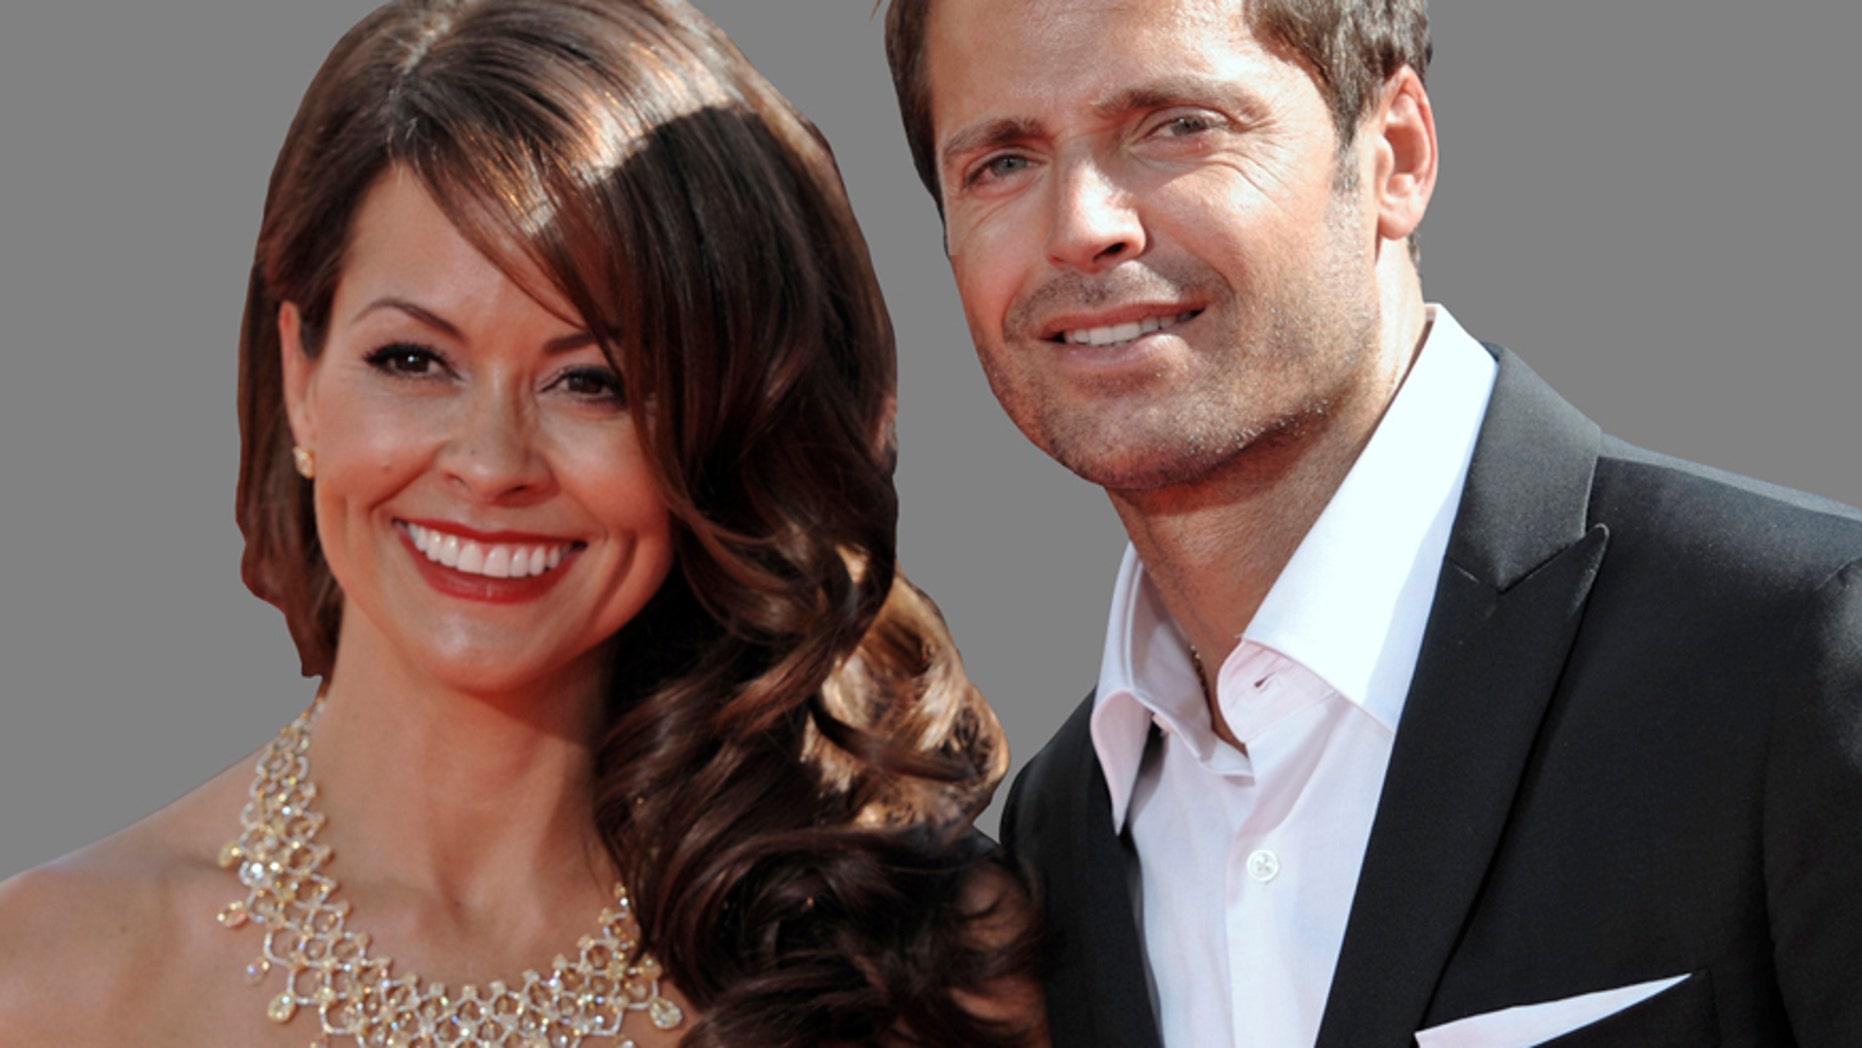 Brooke Burke, left, and David Charvet arrive for the 62nd Primetime Emmy Awards Sunday, Aug. 29, 2010, in Los Angeles.